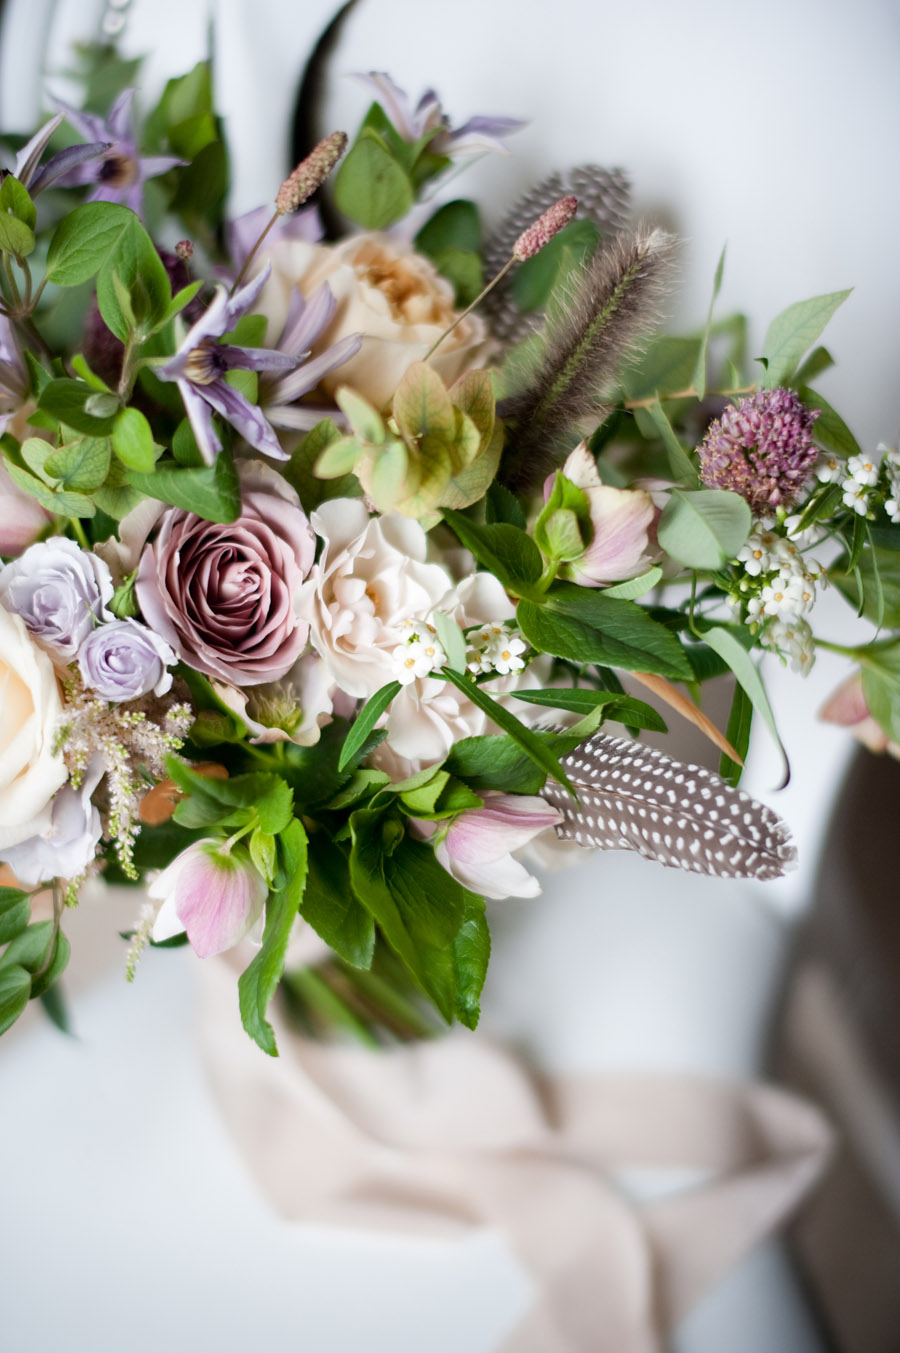 Luxe, modern wedding style ideas by Natalie Hewitt, image credit Rachael Connerton Photography (13)